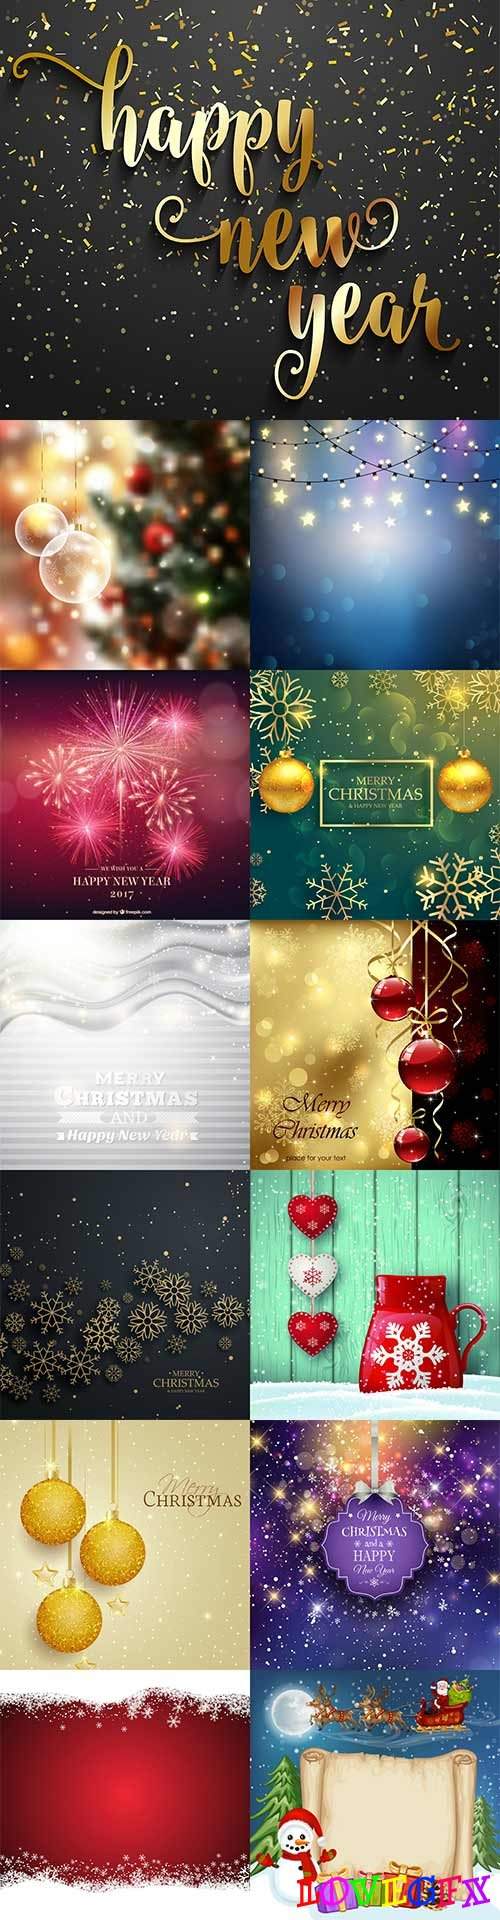 Beautiful New Year vector background 2